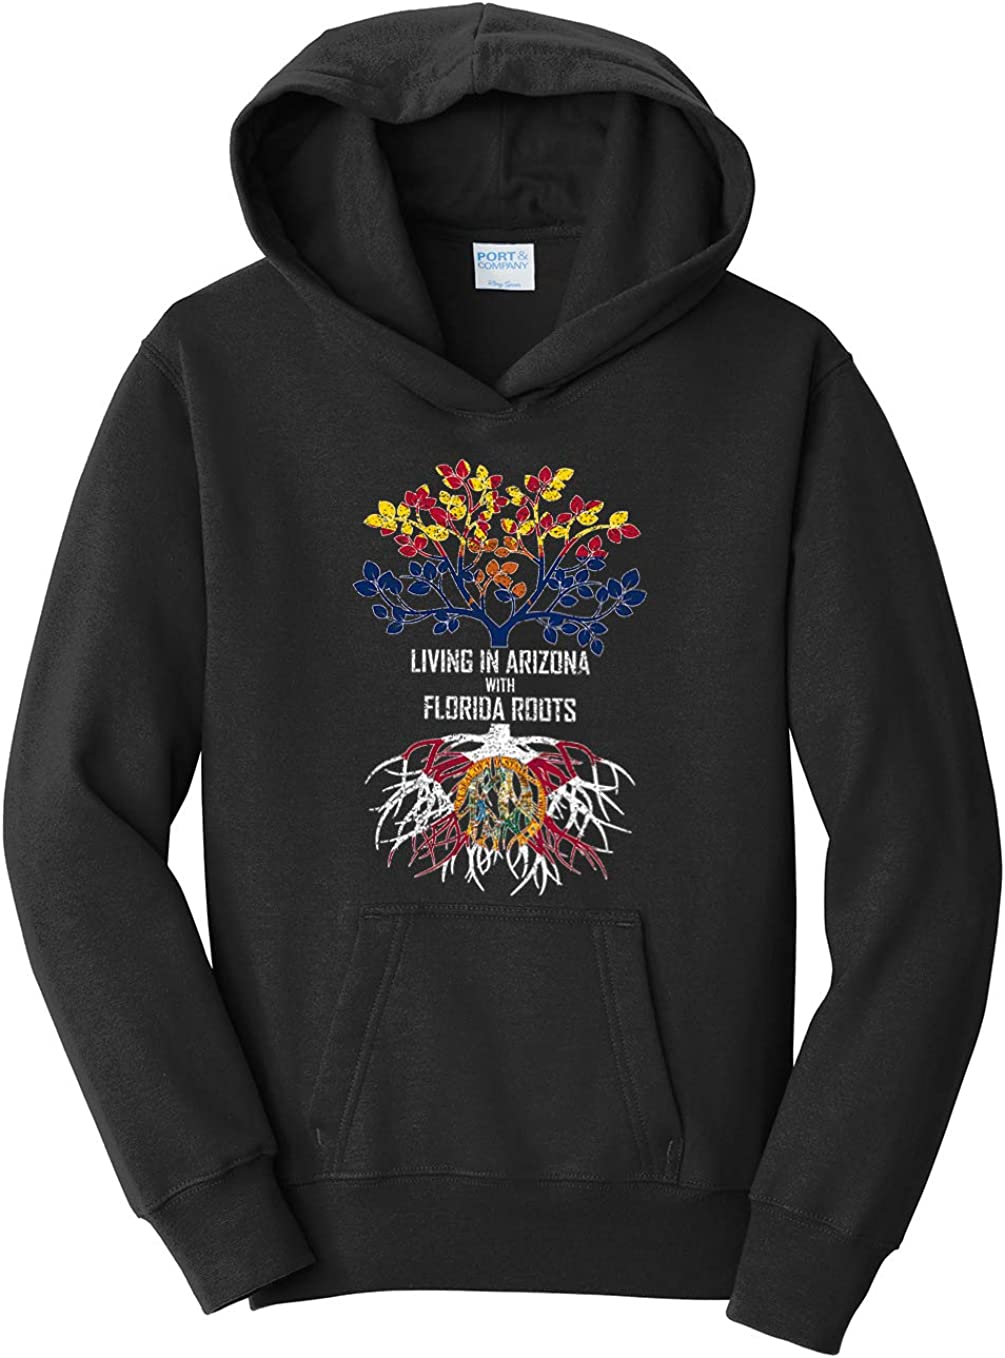 Tenacitee Girls Living in Arizona with Florida Roots Hooded Sweatshirt